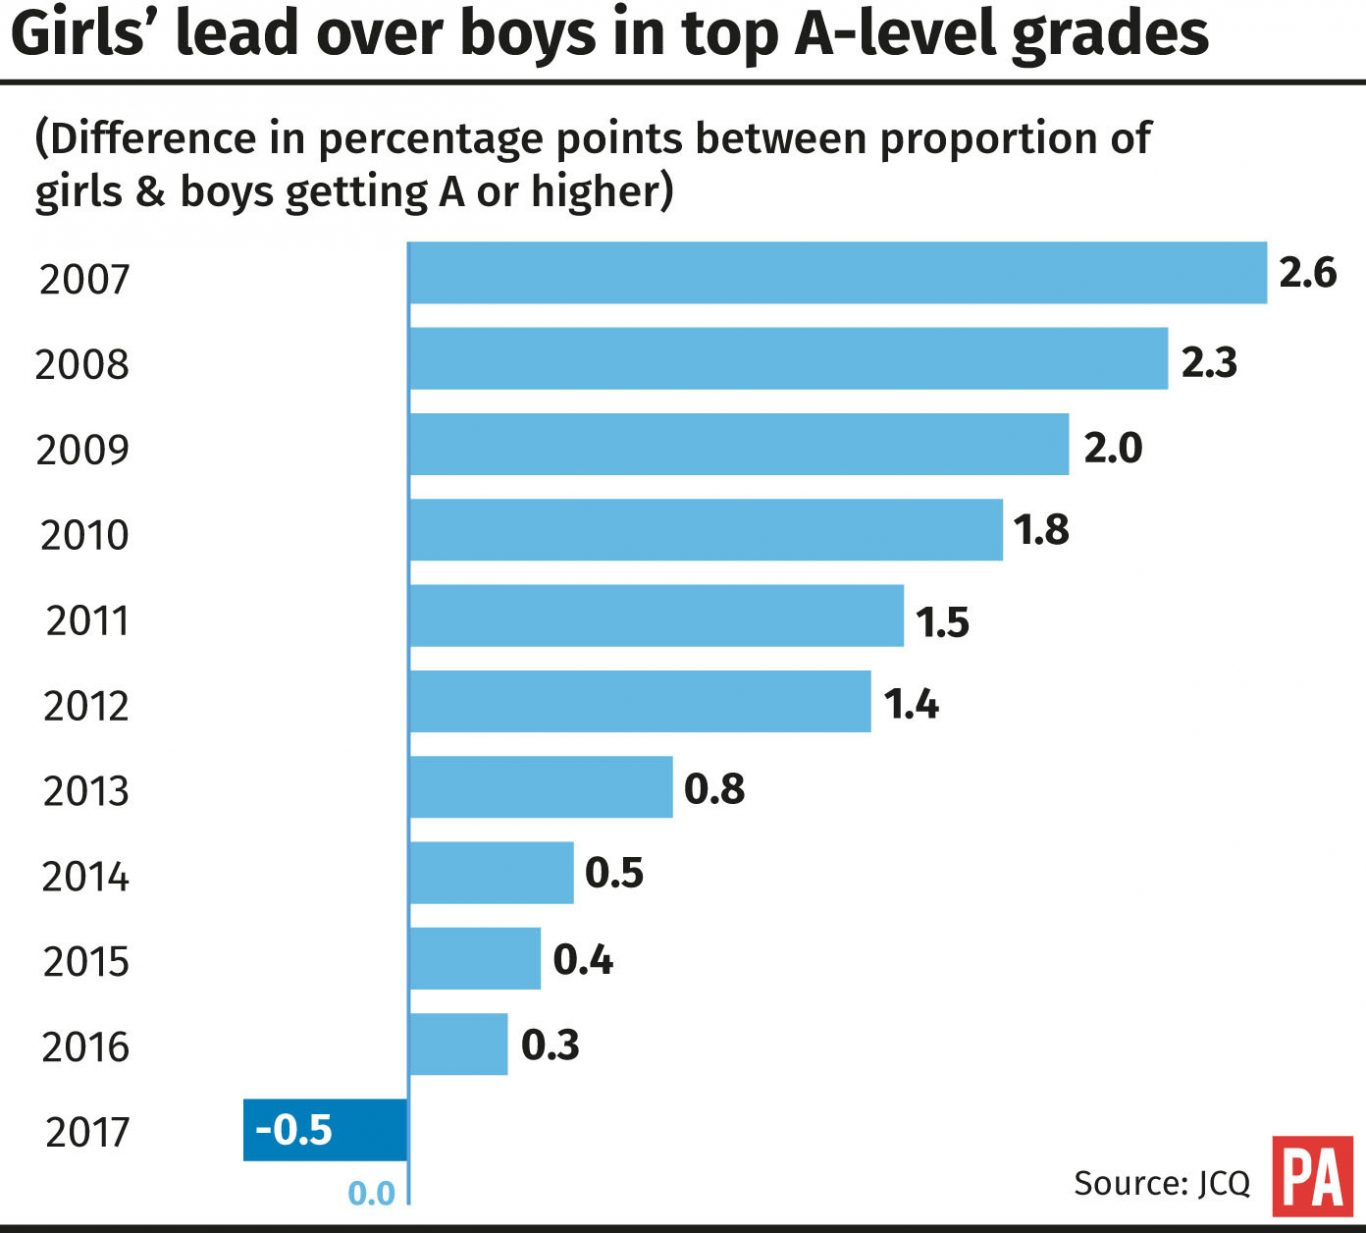 Girls' lead over boys in top A-level grades